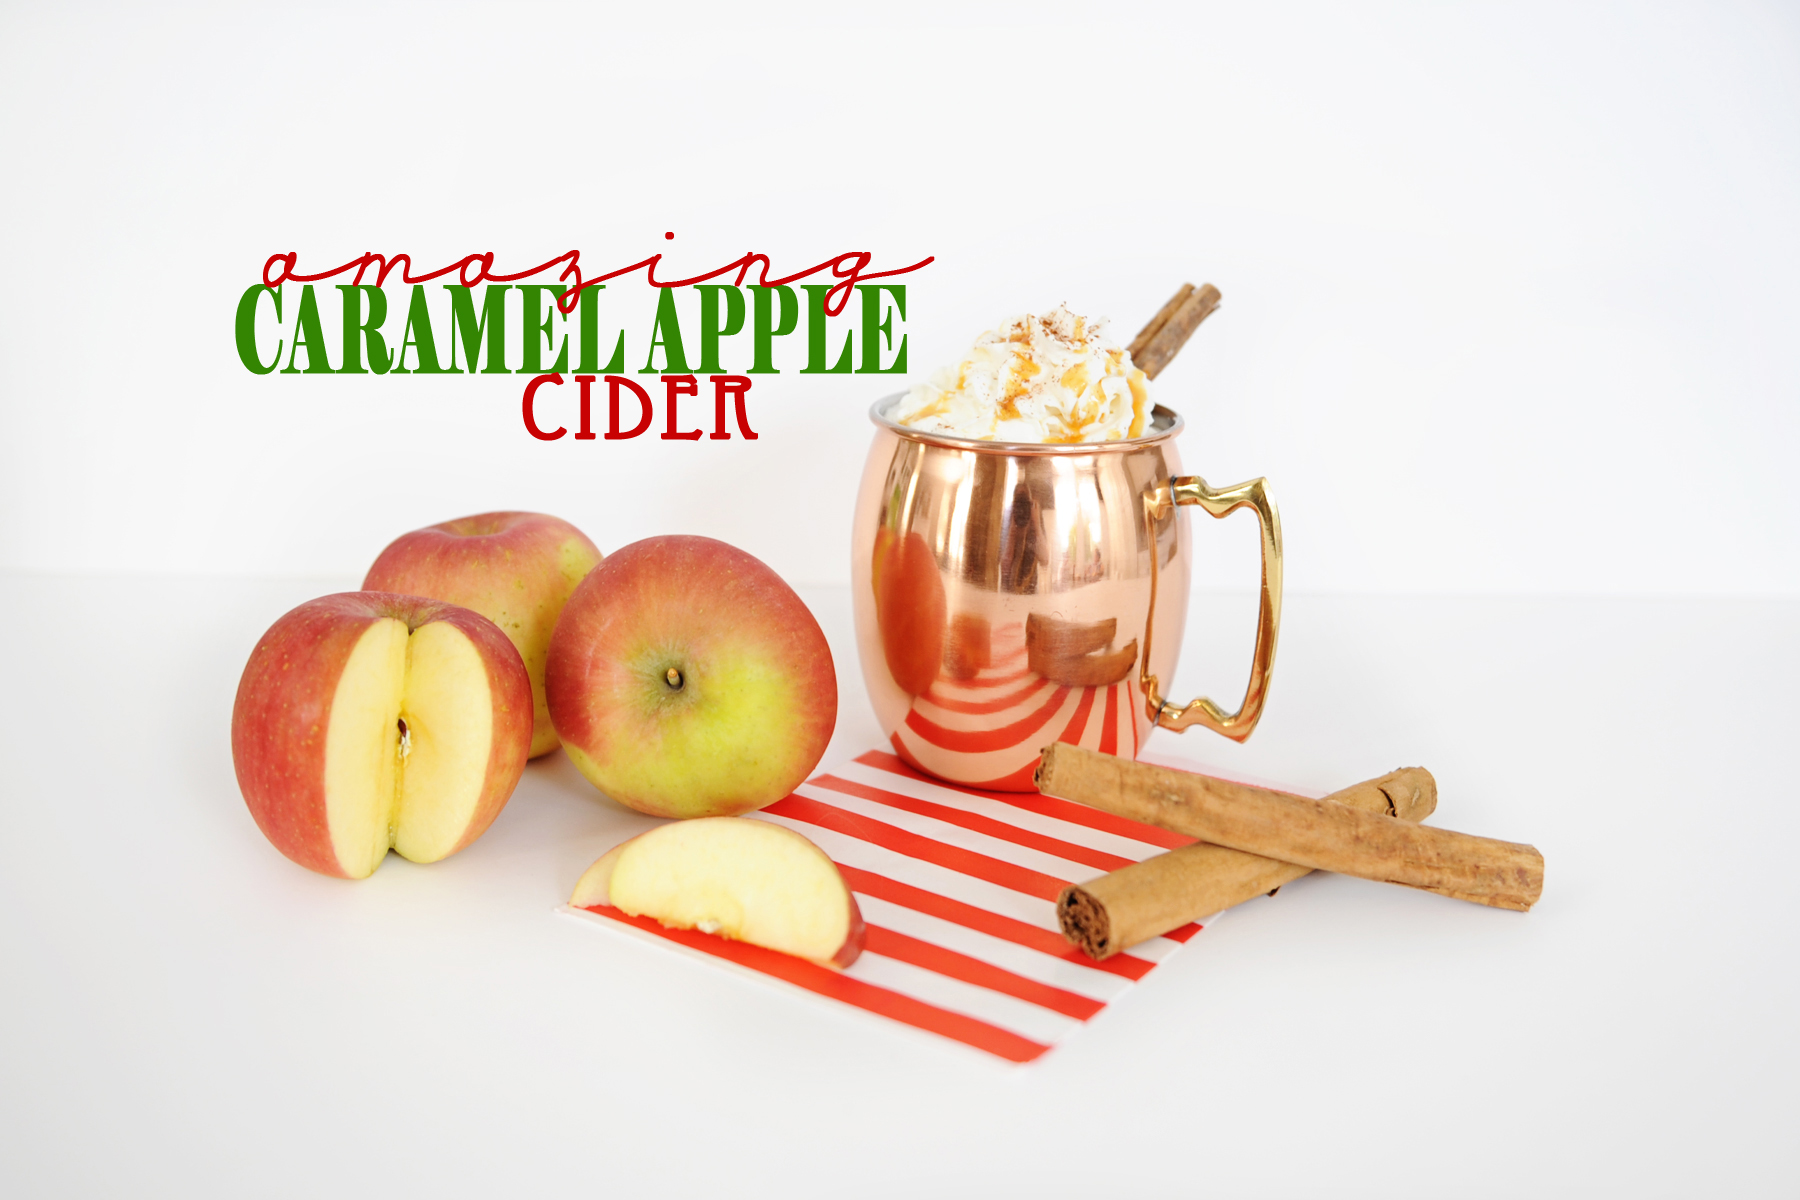 Caramel apple cider with text copy